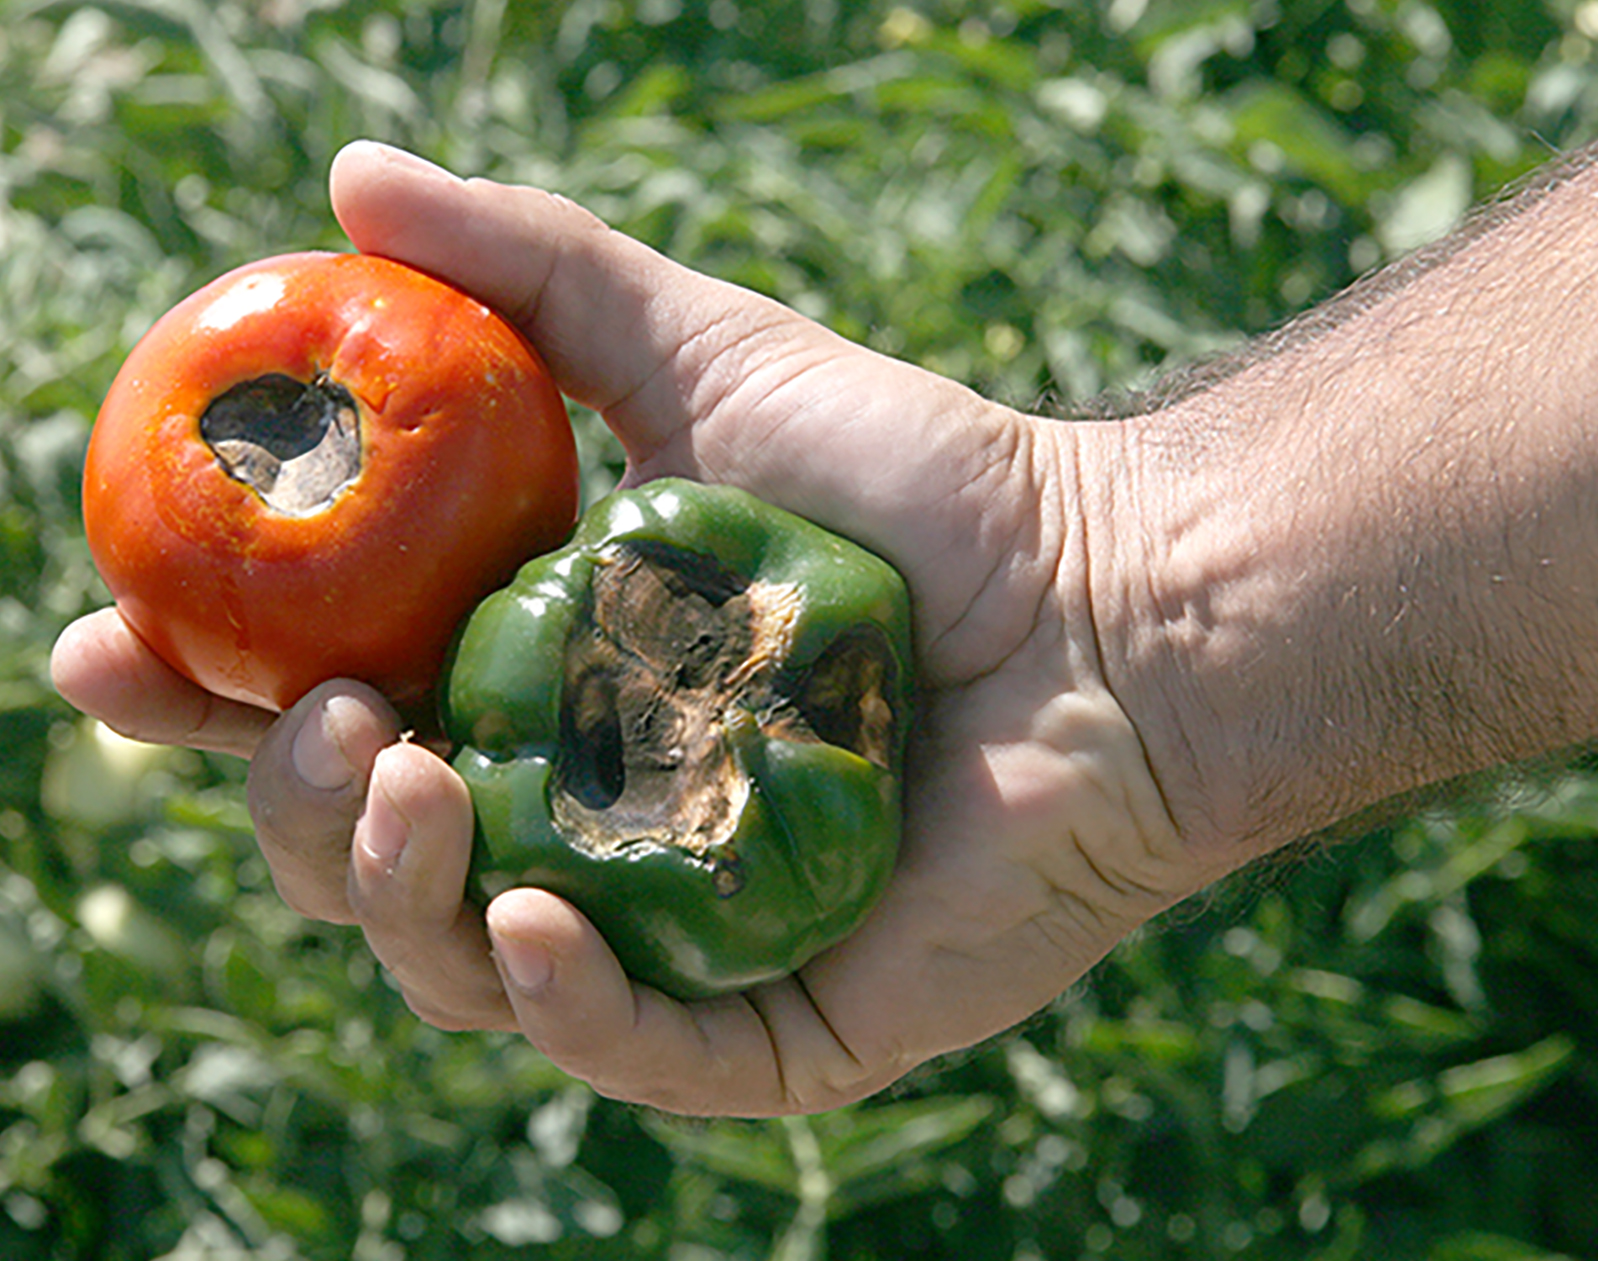 Tim Coolong holds a bell pepper and tomato. Both vegetables, grown on the UGA Tifton Campus, show symptoms of blossom end rot.